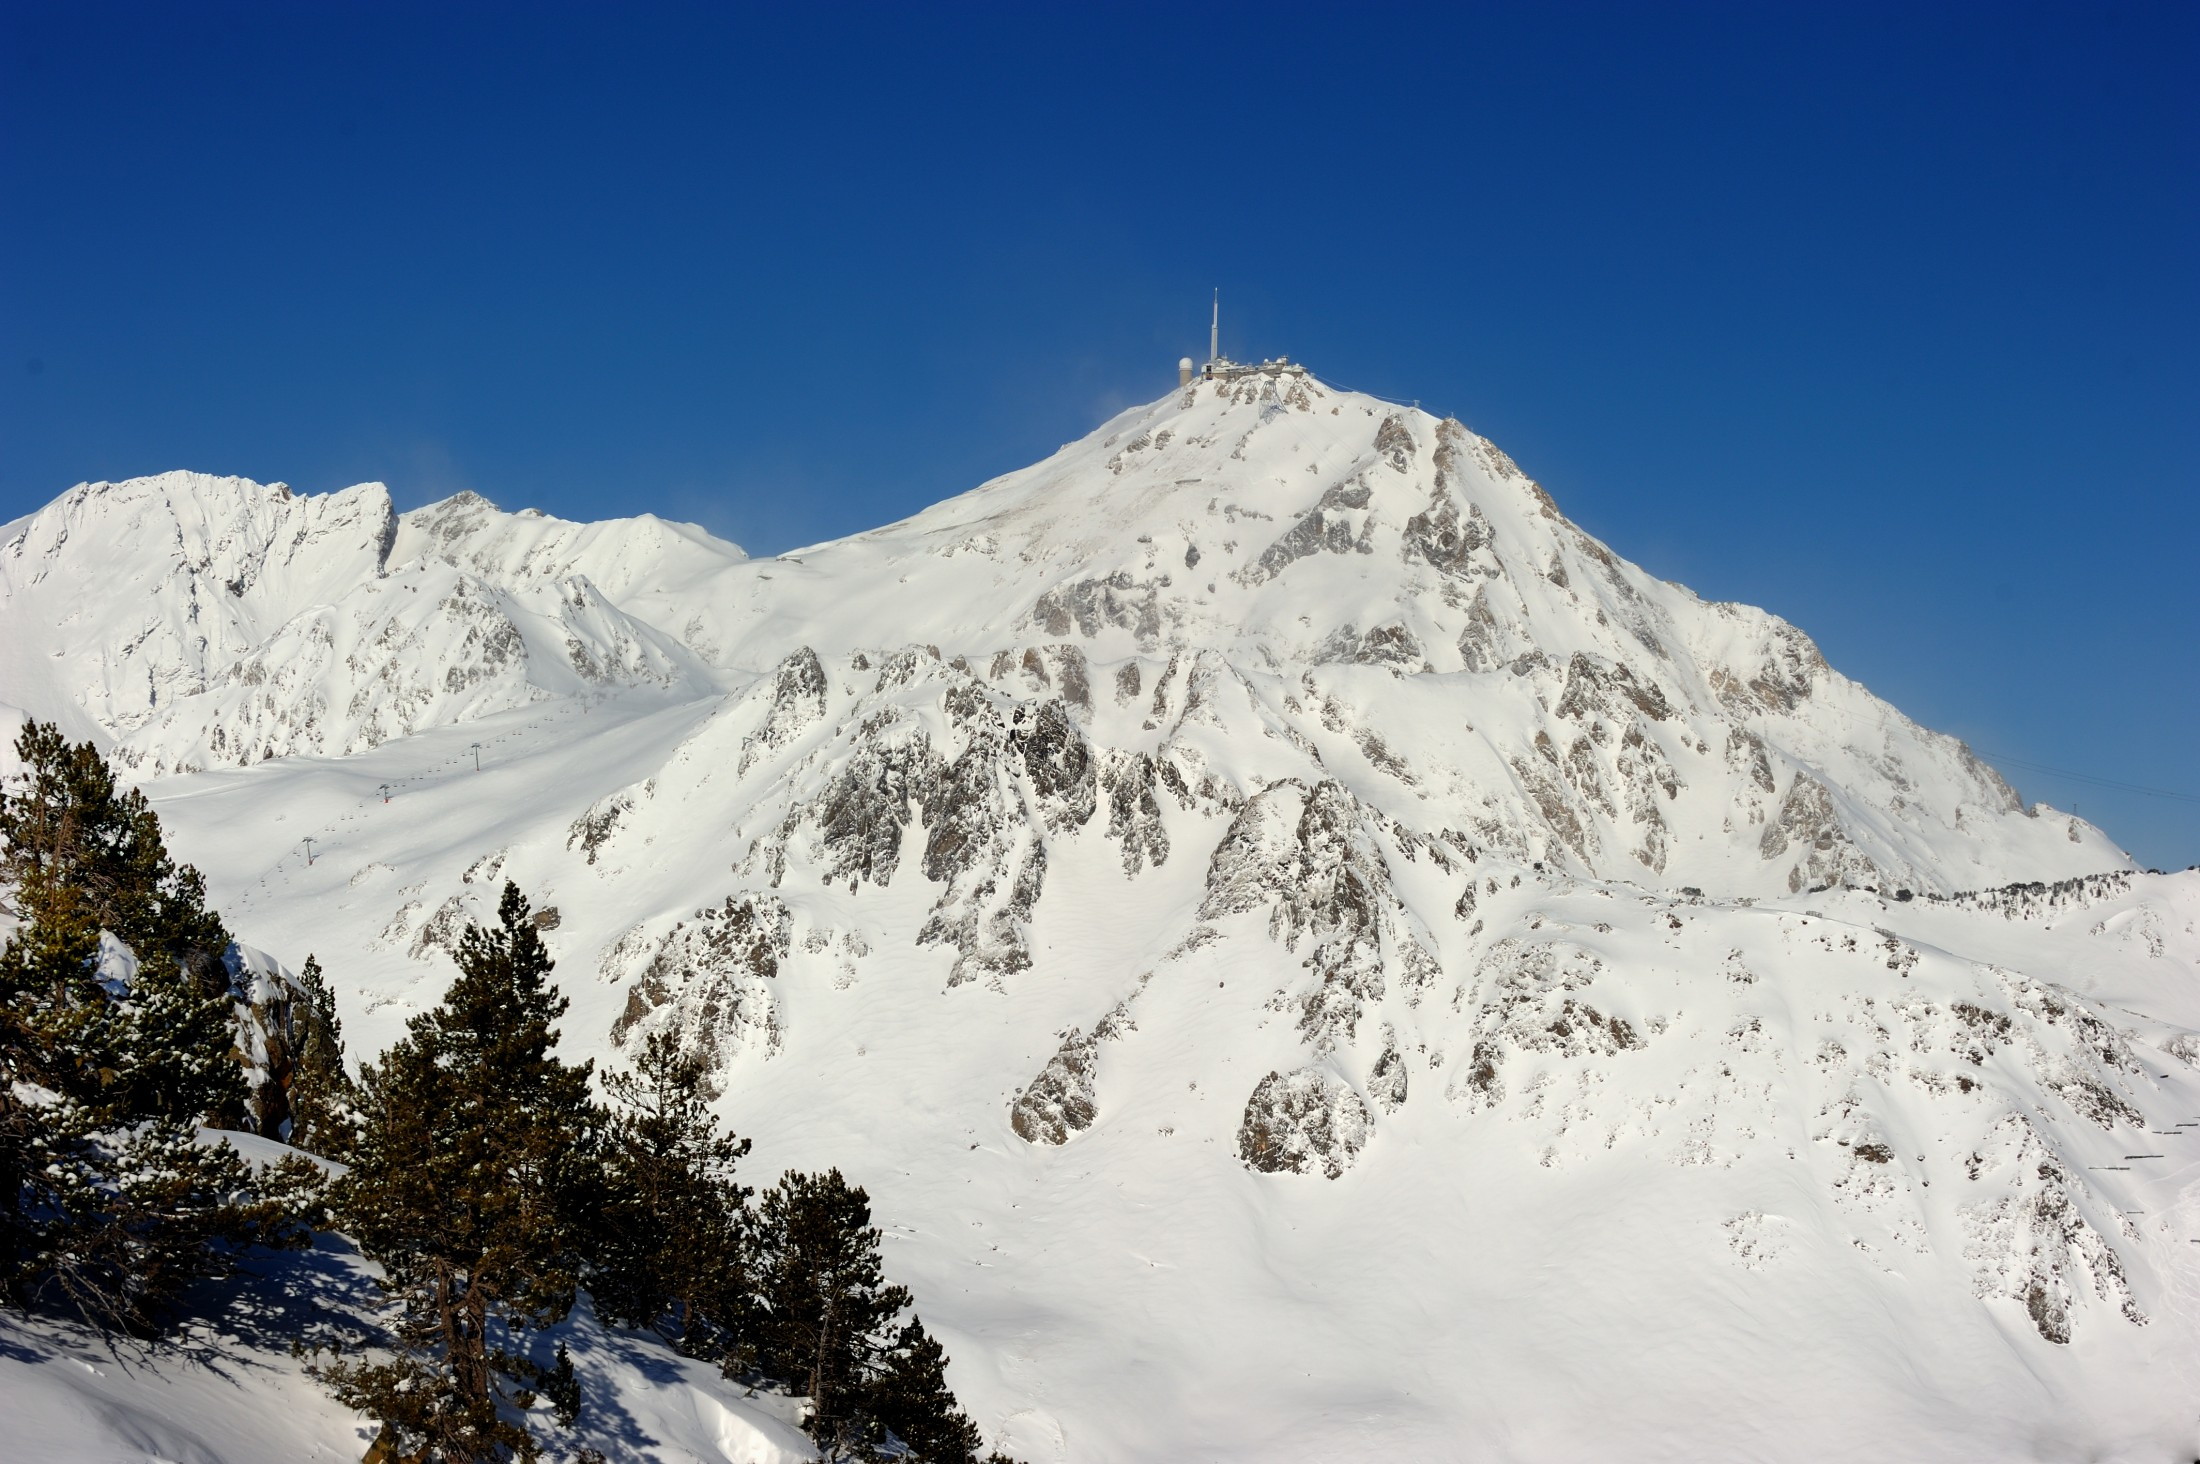 The Pic du Midi under the snow